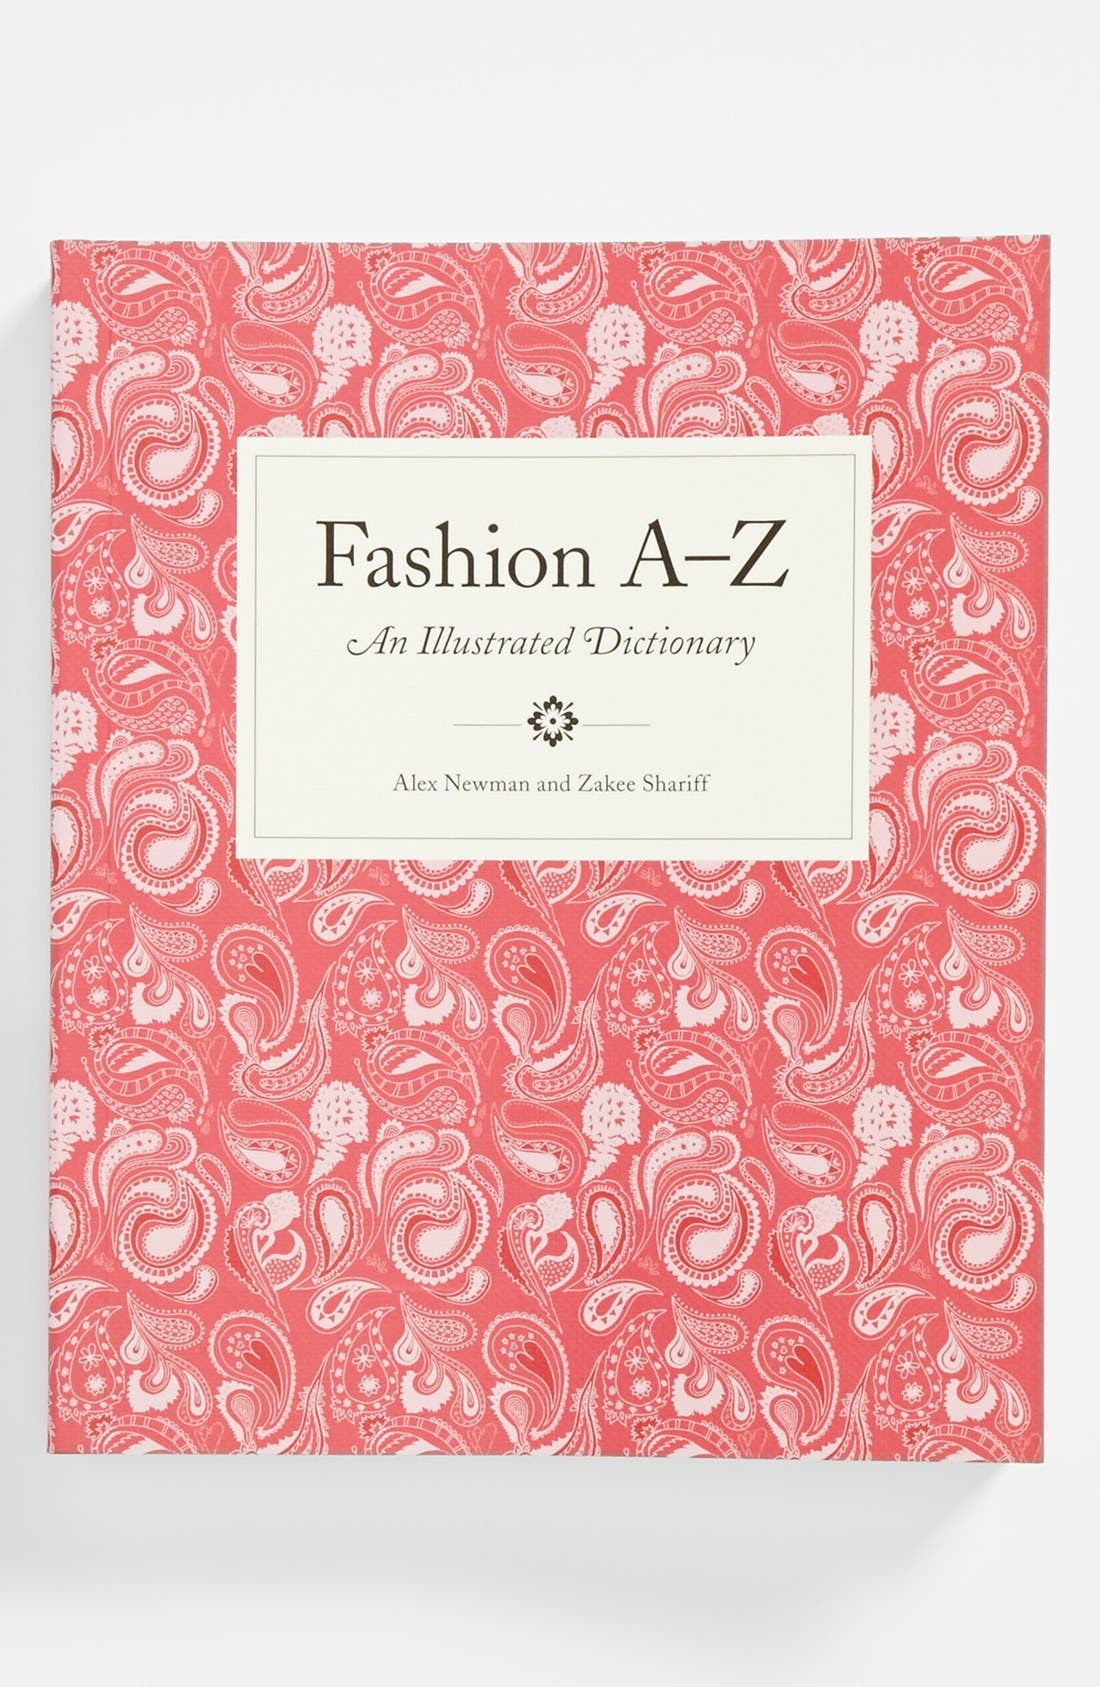 Alternate Image 1 Selected - 'Fashion A - Z' Illustrated Dictionary